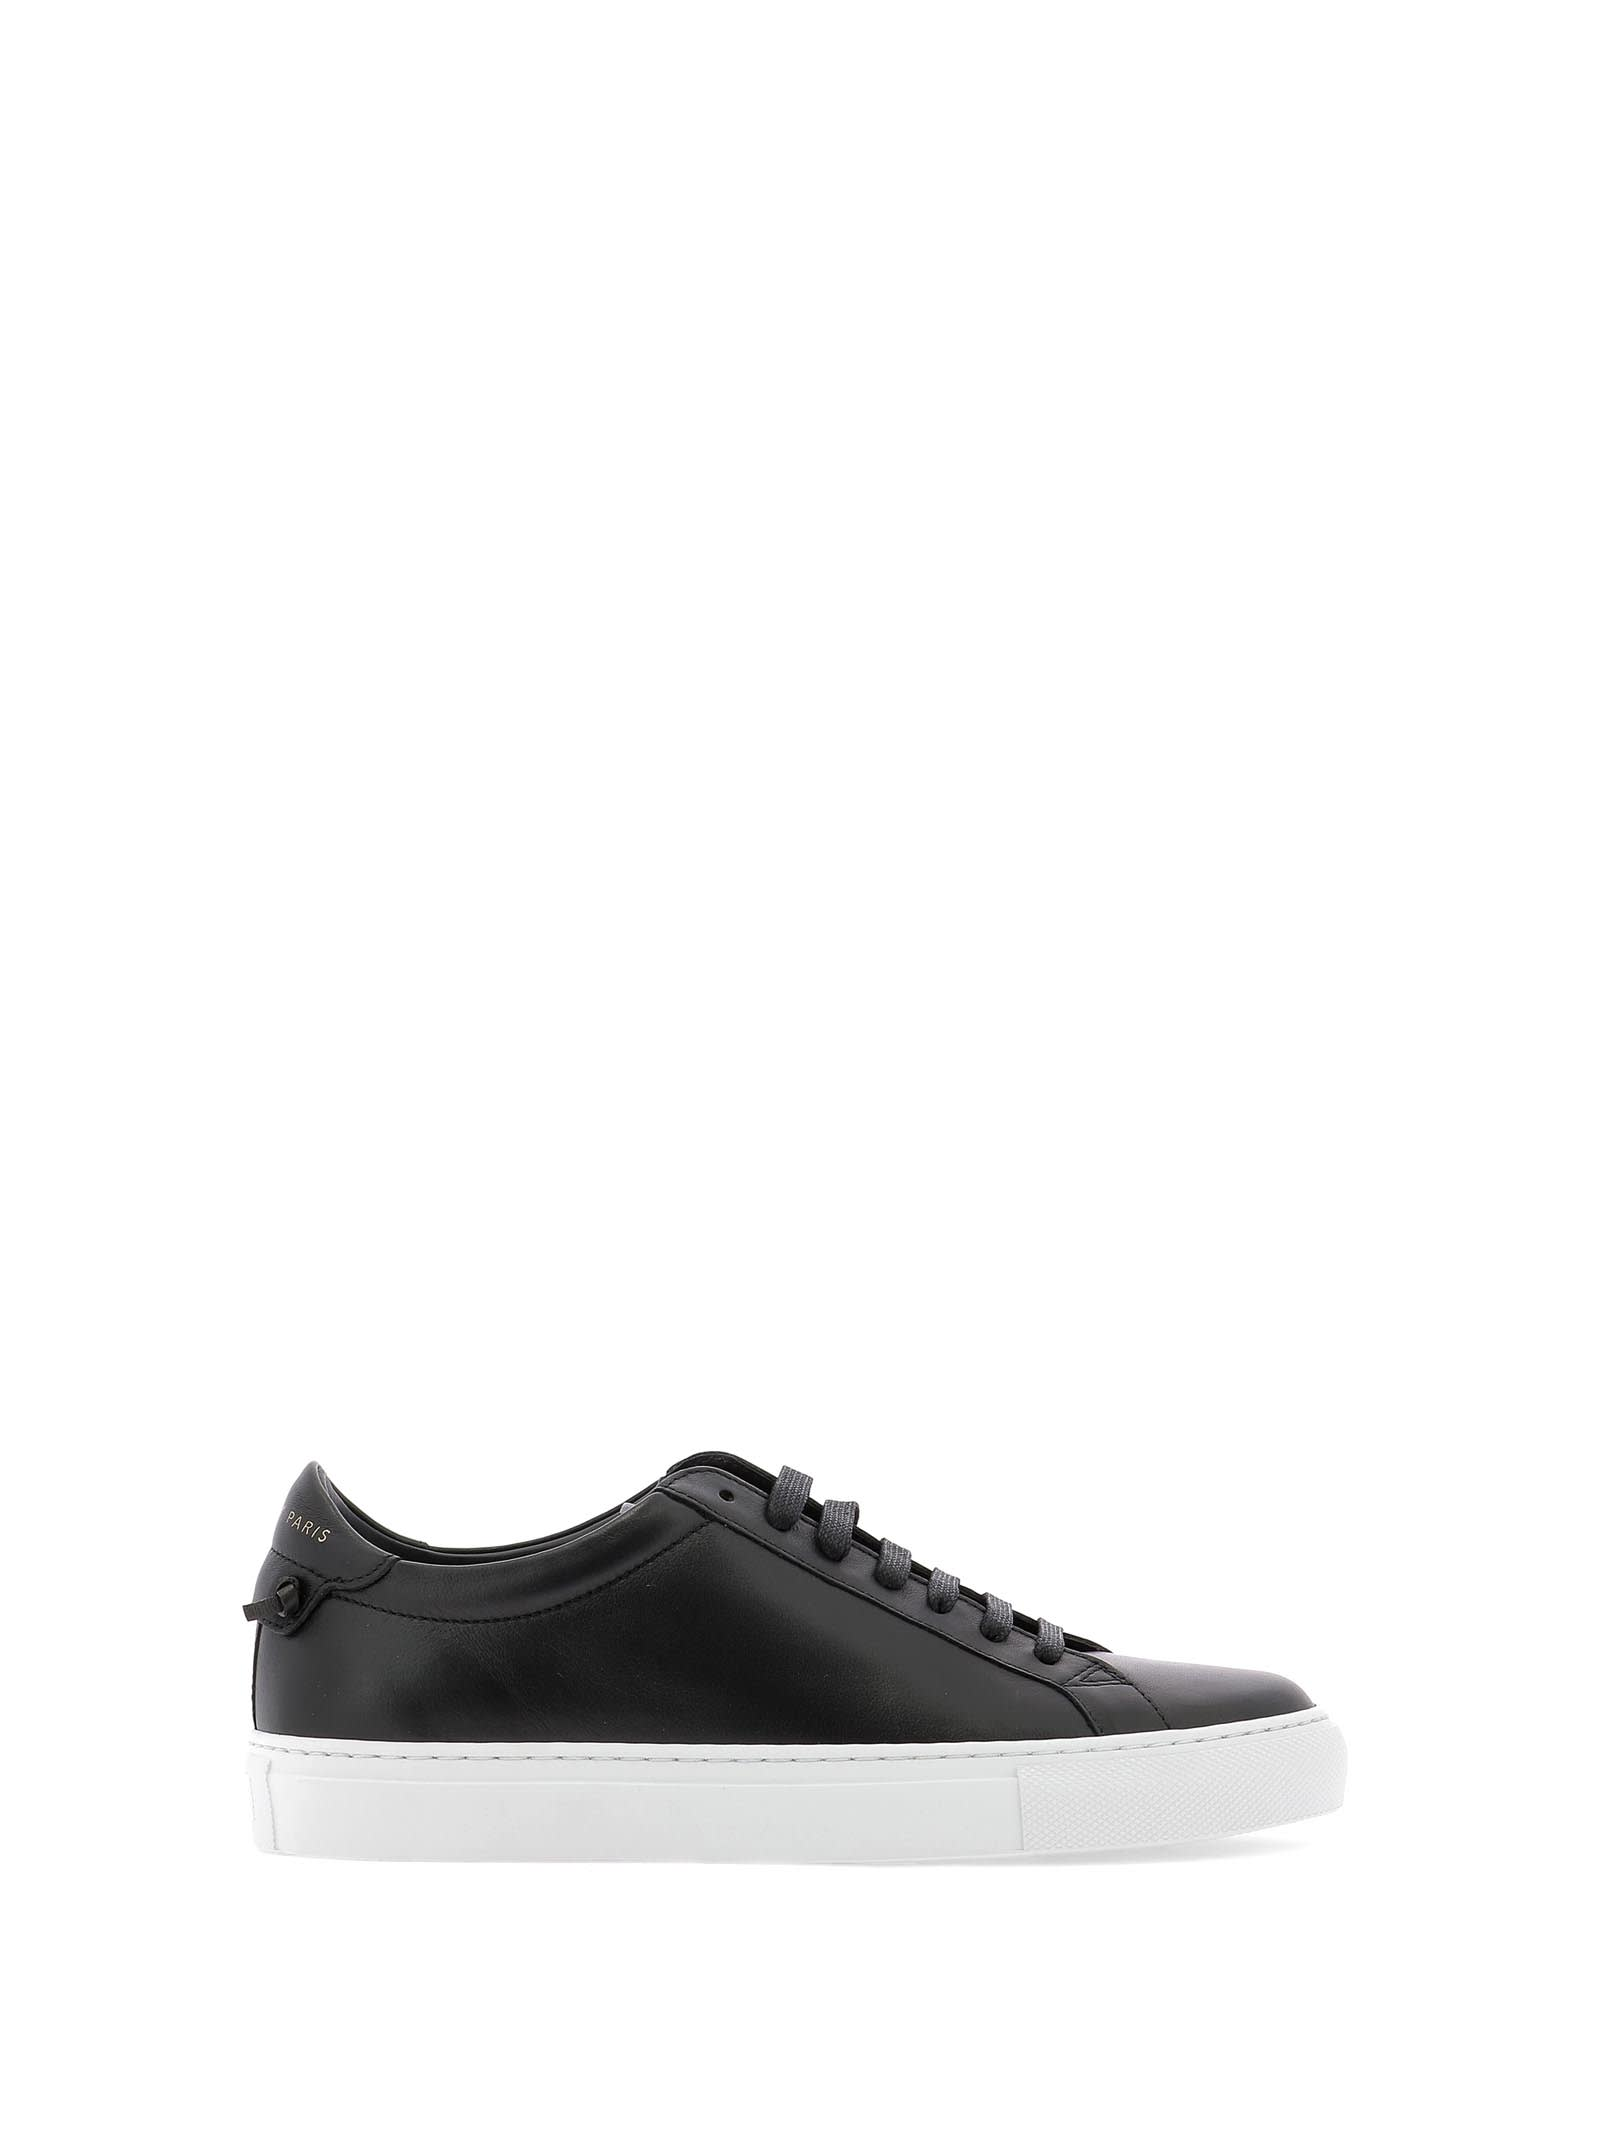 Givenchy Sneakers | italist, ALWAYS